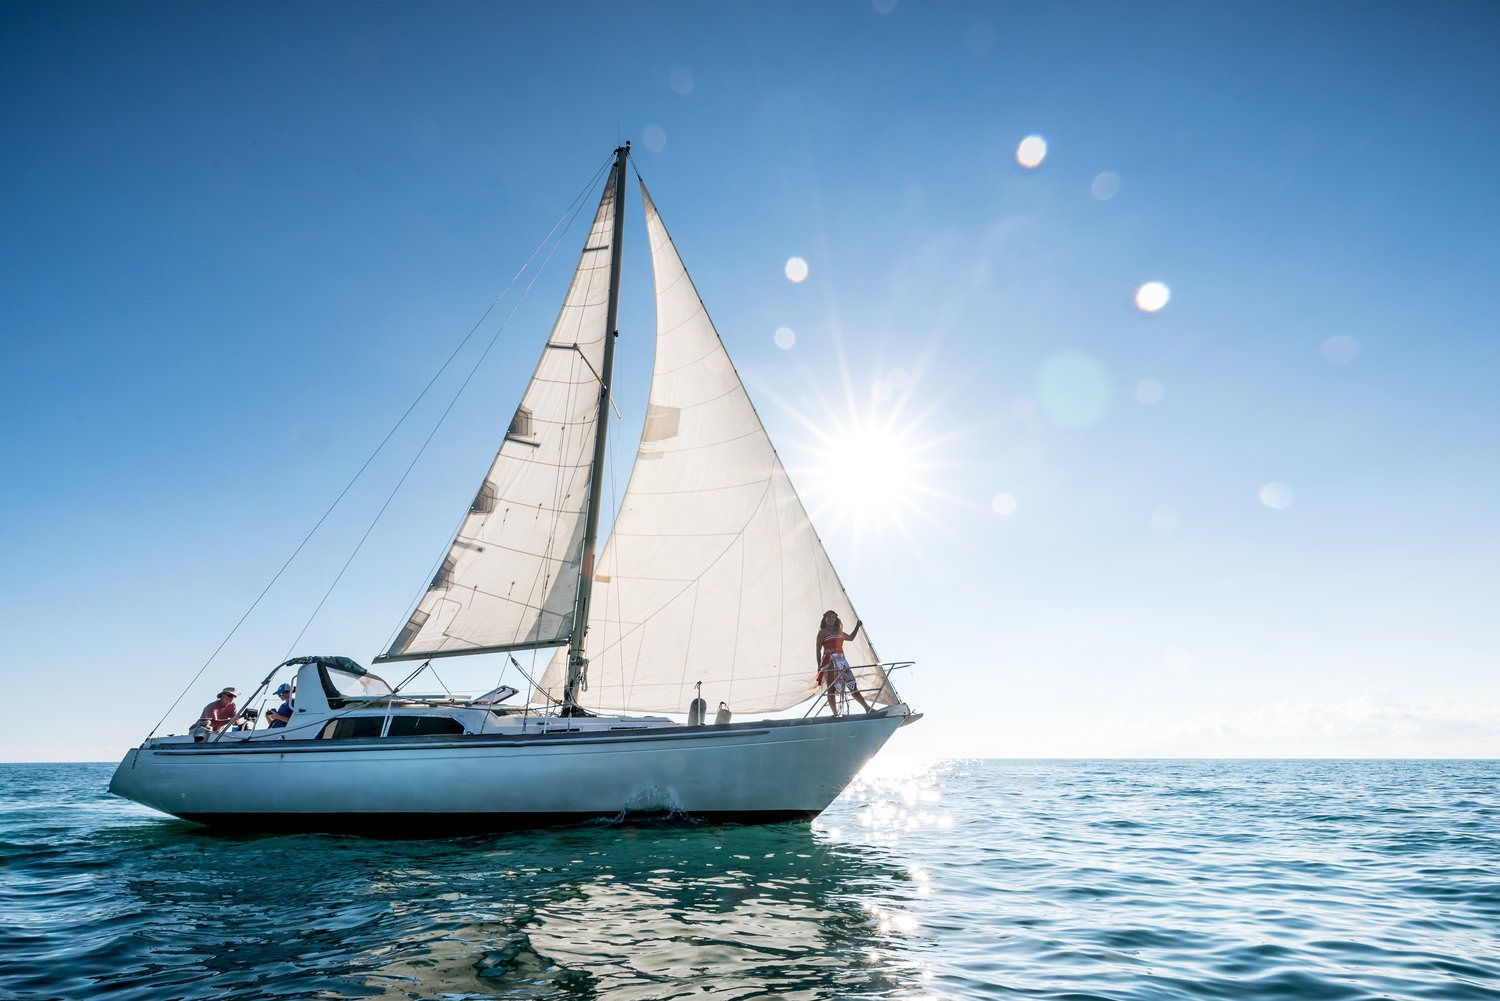 Marine+Insurance+-+Why+Should+you+Insure+your+Cruising+Sailboat+and+which+Marine+Insurance+Should+you+Choose_